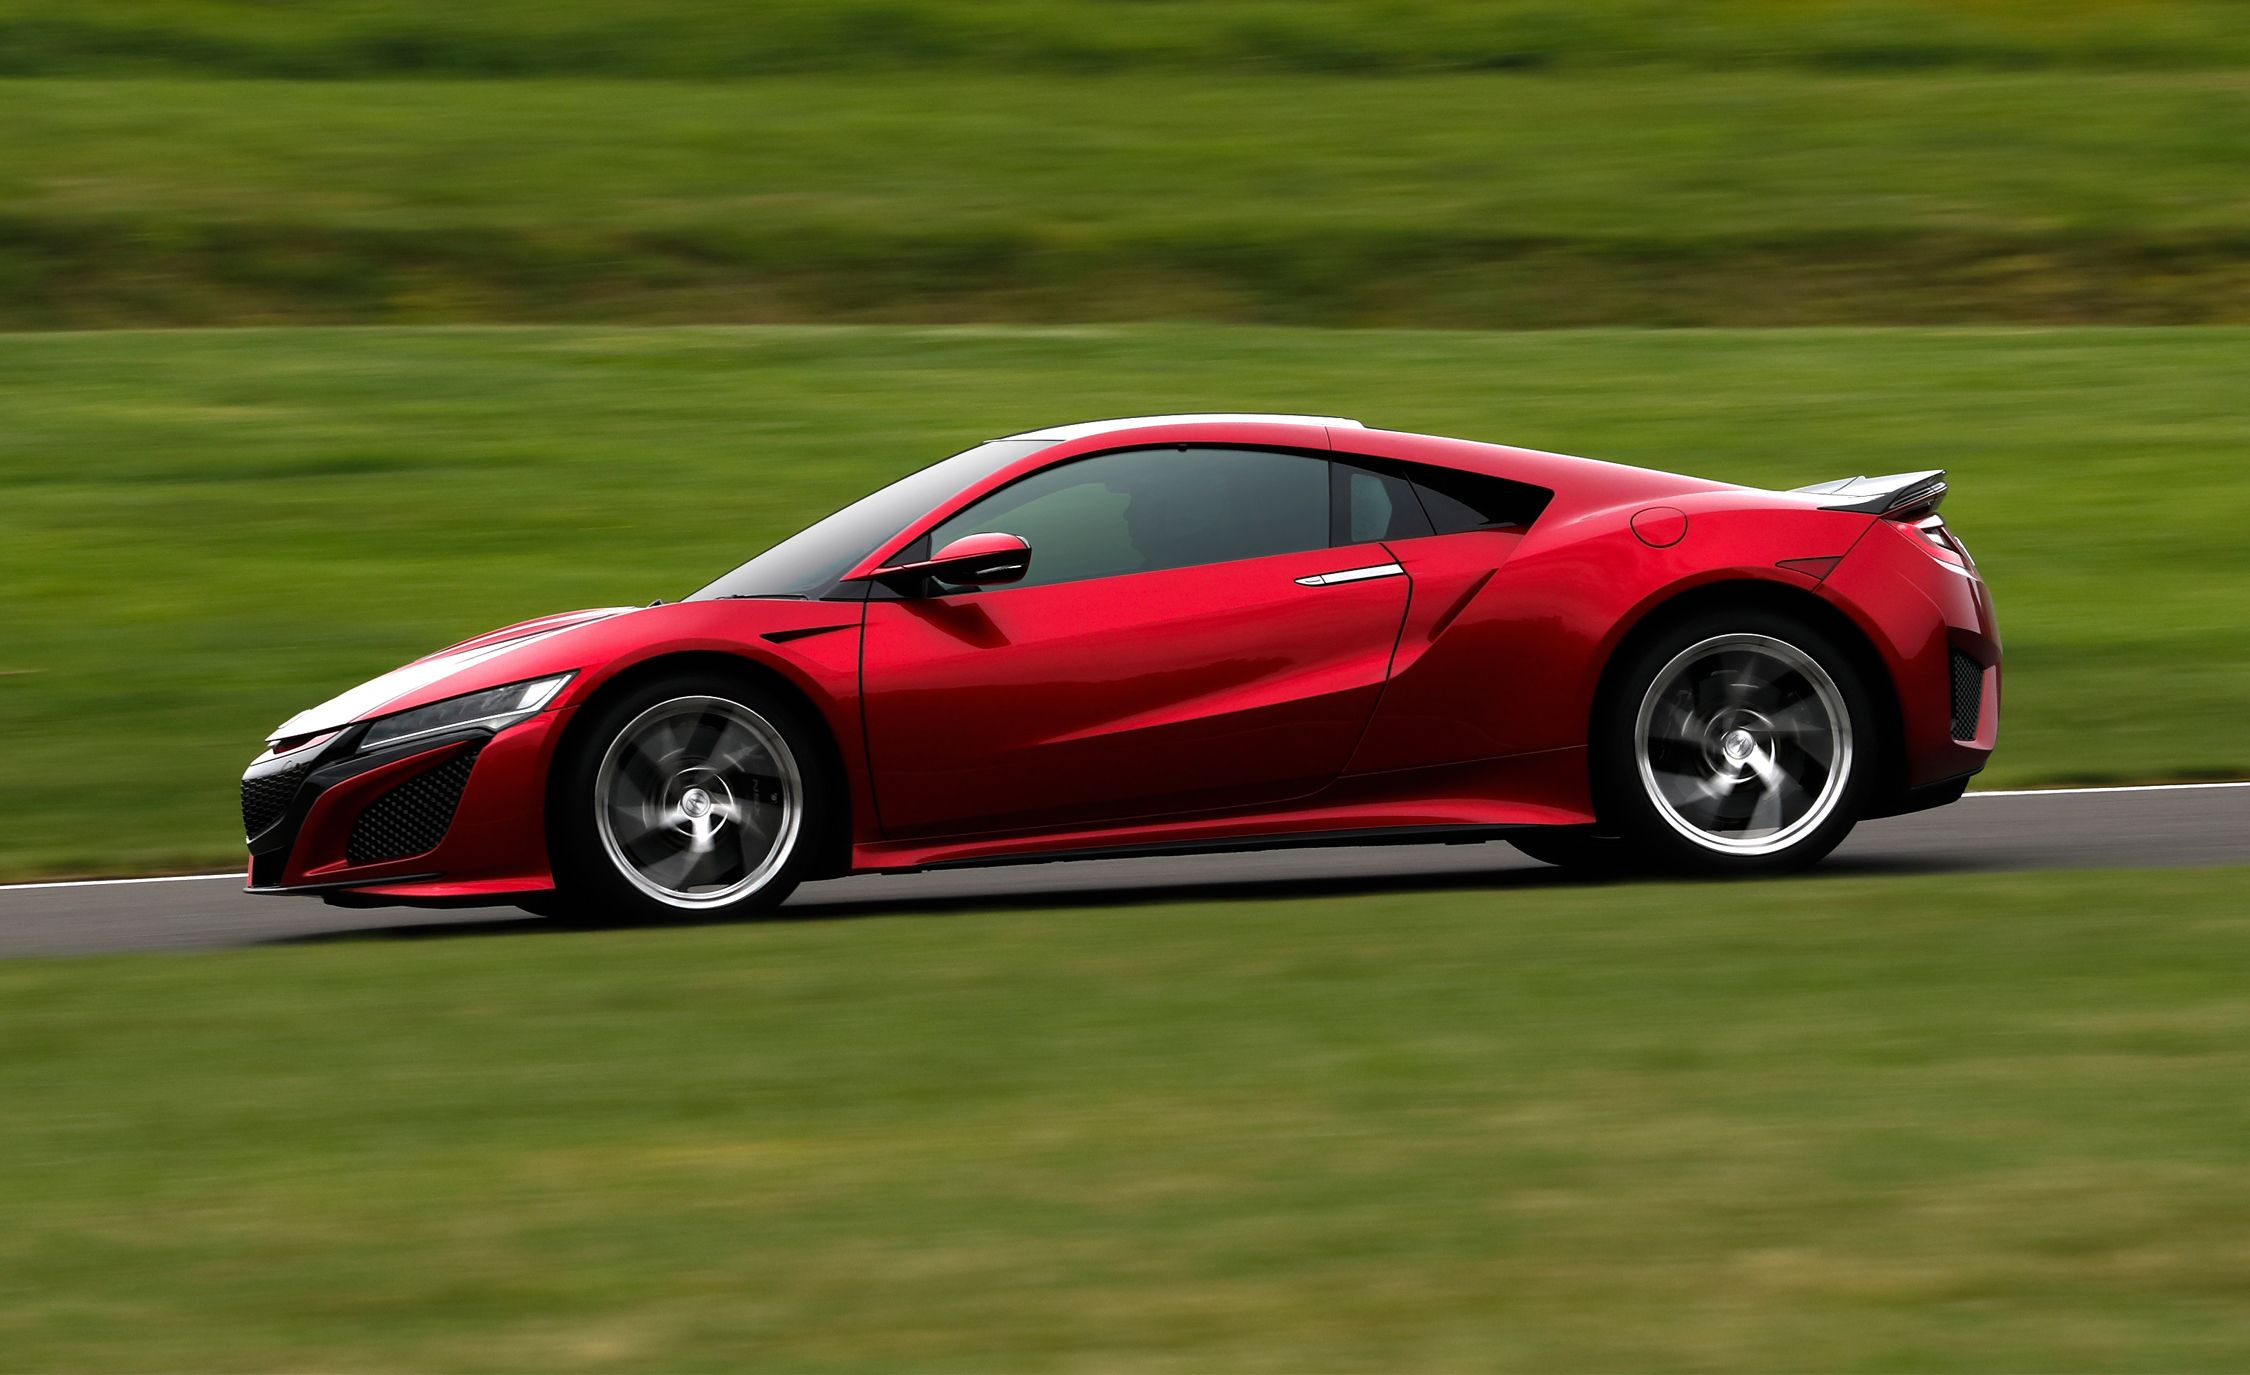 2019 Acura Nsx A Hybrid Supercar With Manners